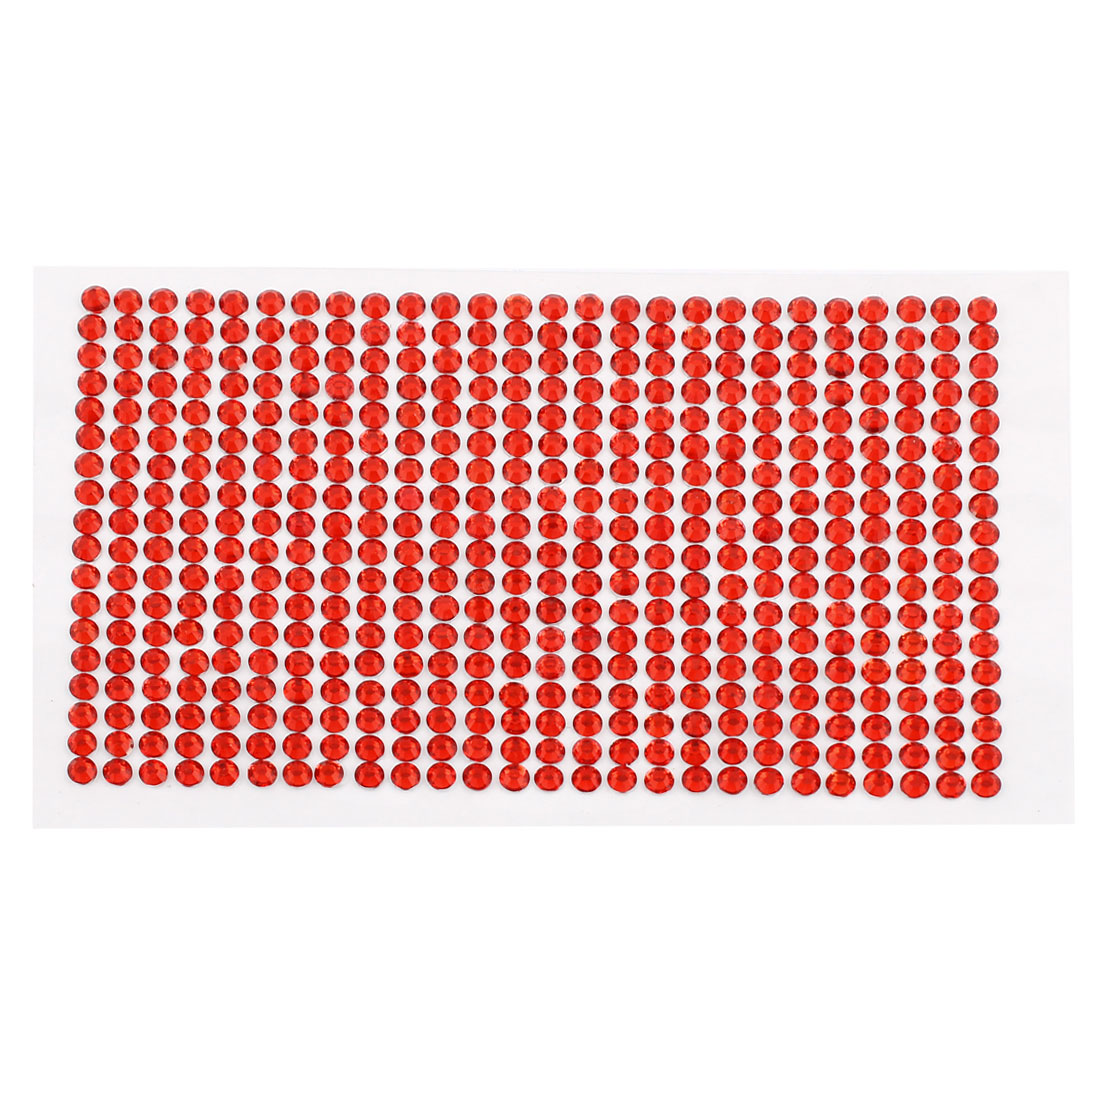 Vehicle Home DIY Decorating Red Crystal Sticker Sheet 16cm x 10cm 468 in 1